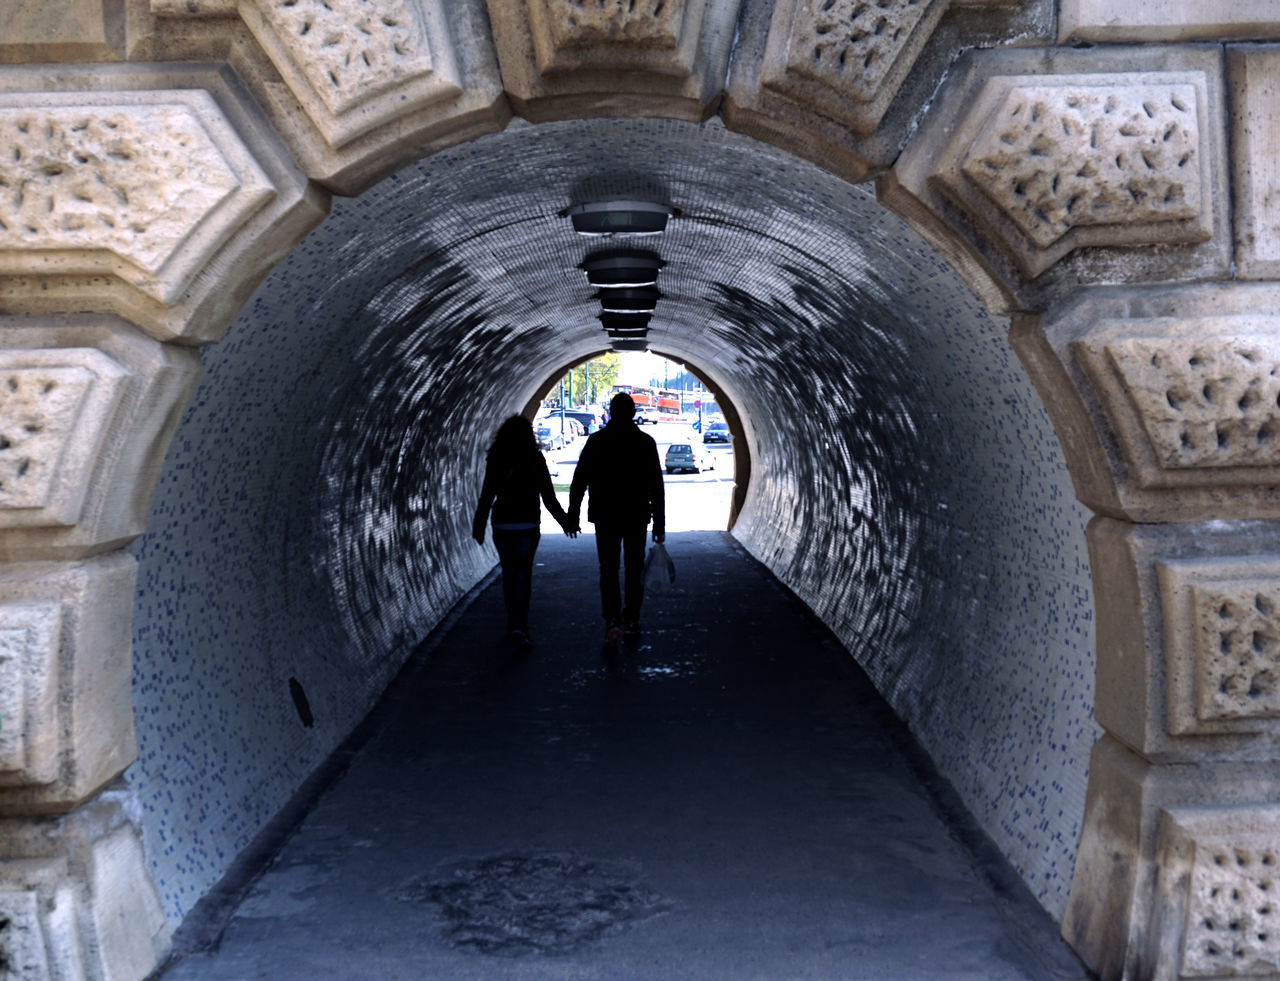 On the Danube [Budapest] // Tunnel of Love // Sony a6000 Adult Arch Architecture Budapest Budapest, Hungary Built Structure Couple Full Length Holding Hands Lifestyles Light At The End Of The Tunnel Love People Real People Rear View Relationship Silhouette This Week On Eyeem Tourism Travel Destinations Tunnel Two People Walking Let's Go. Together.